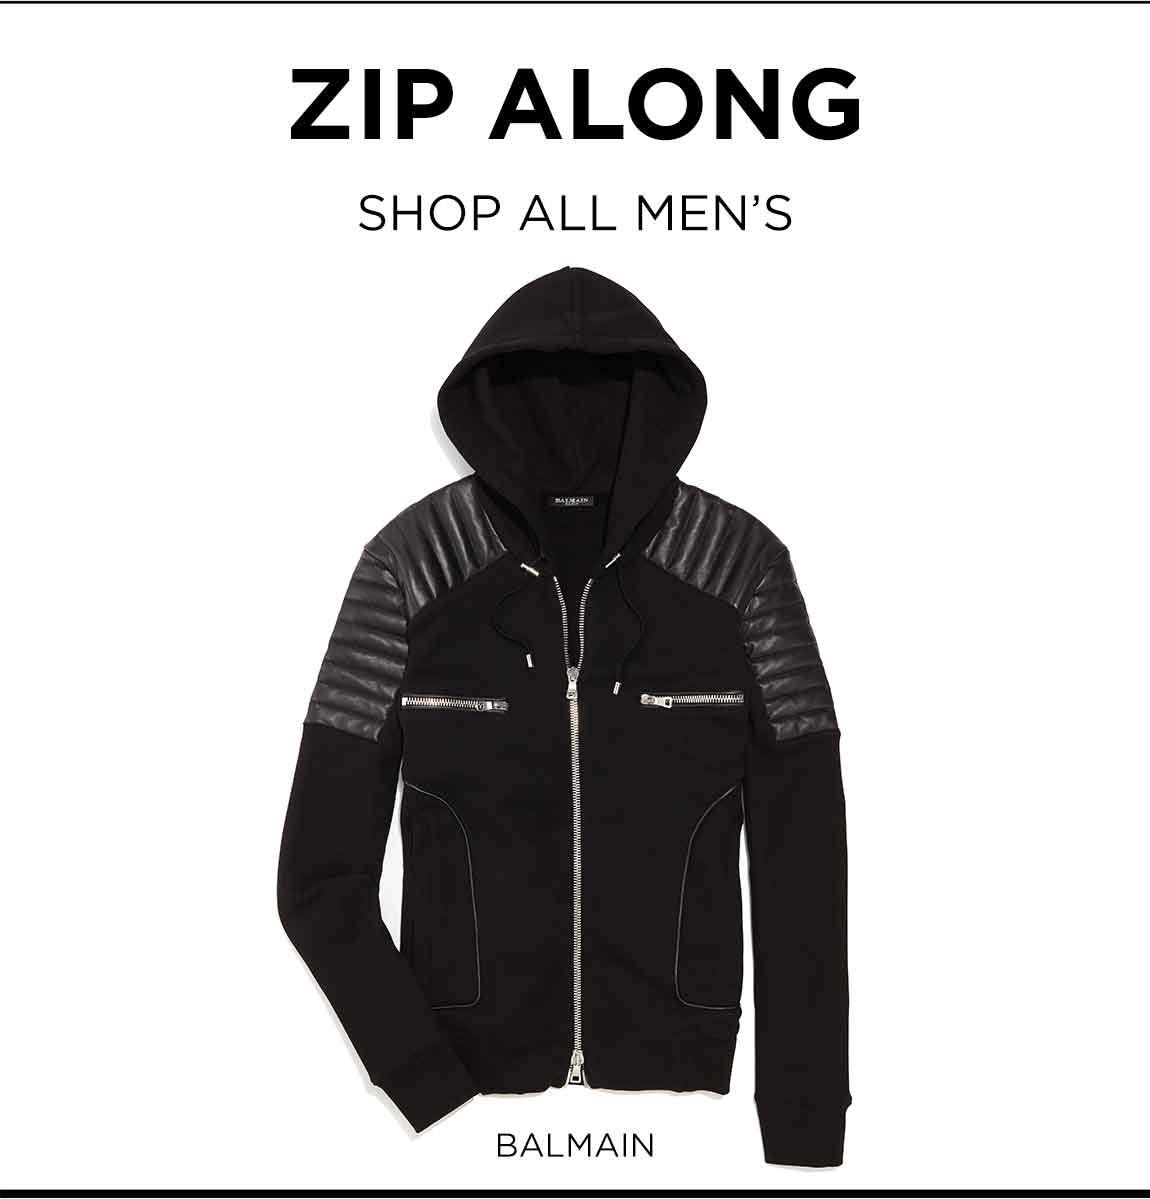 Shop All Men's